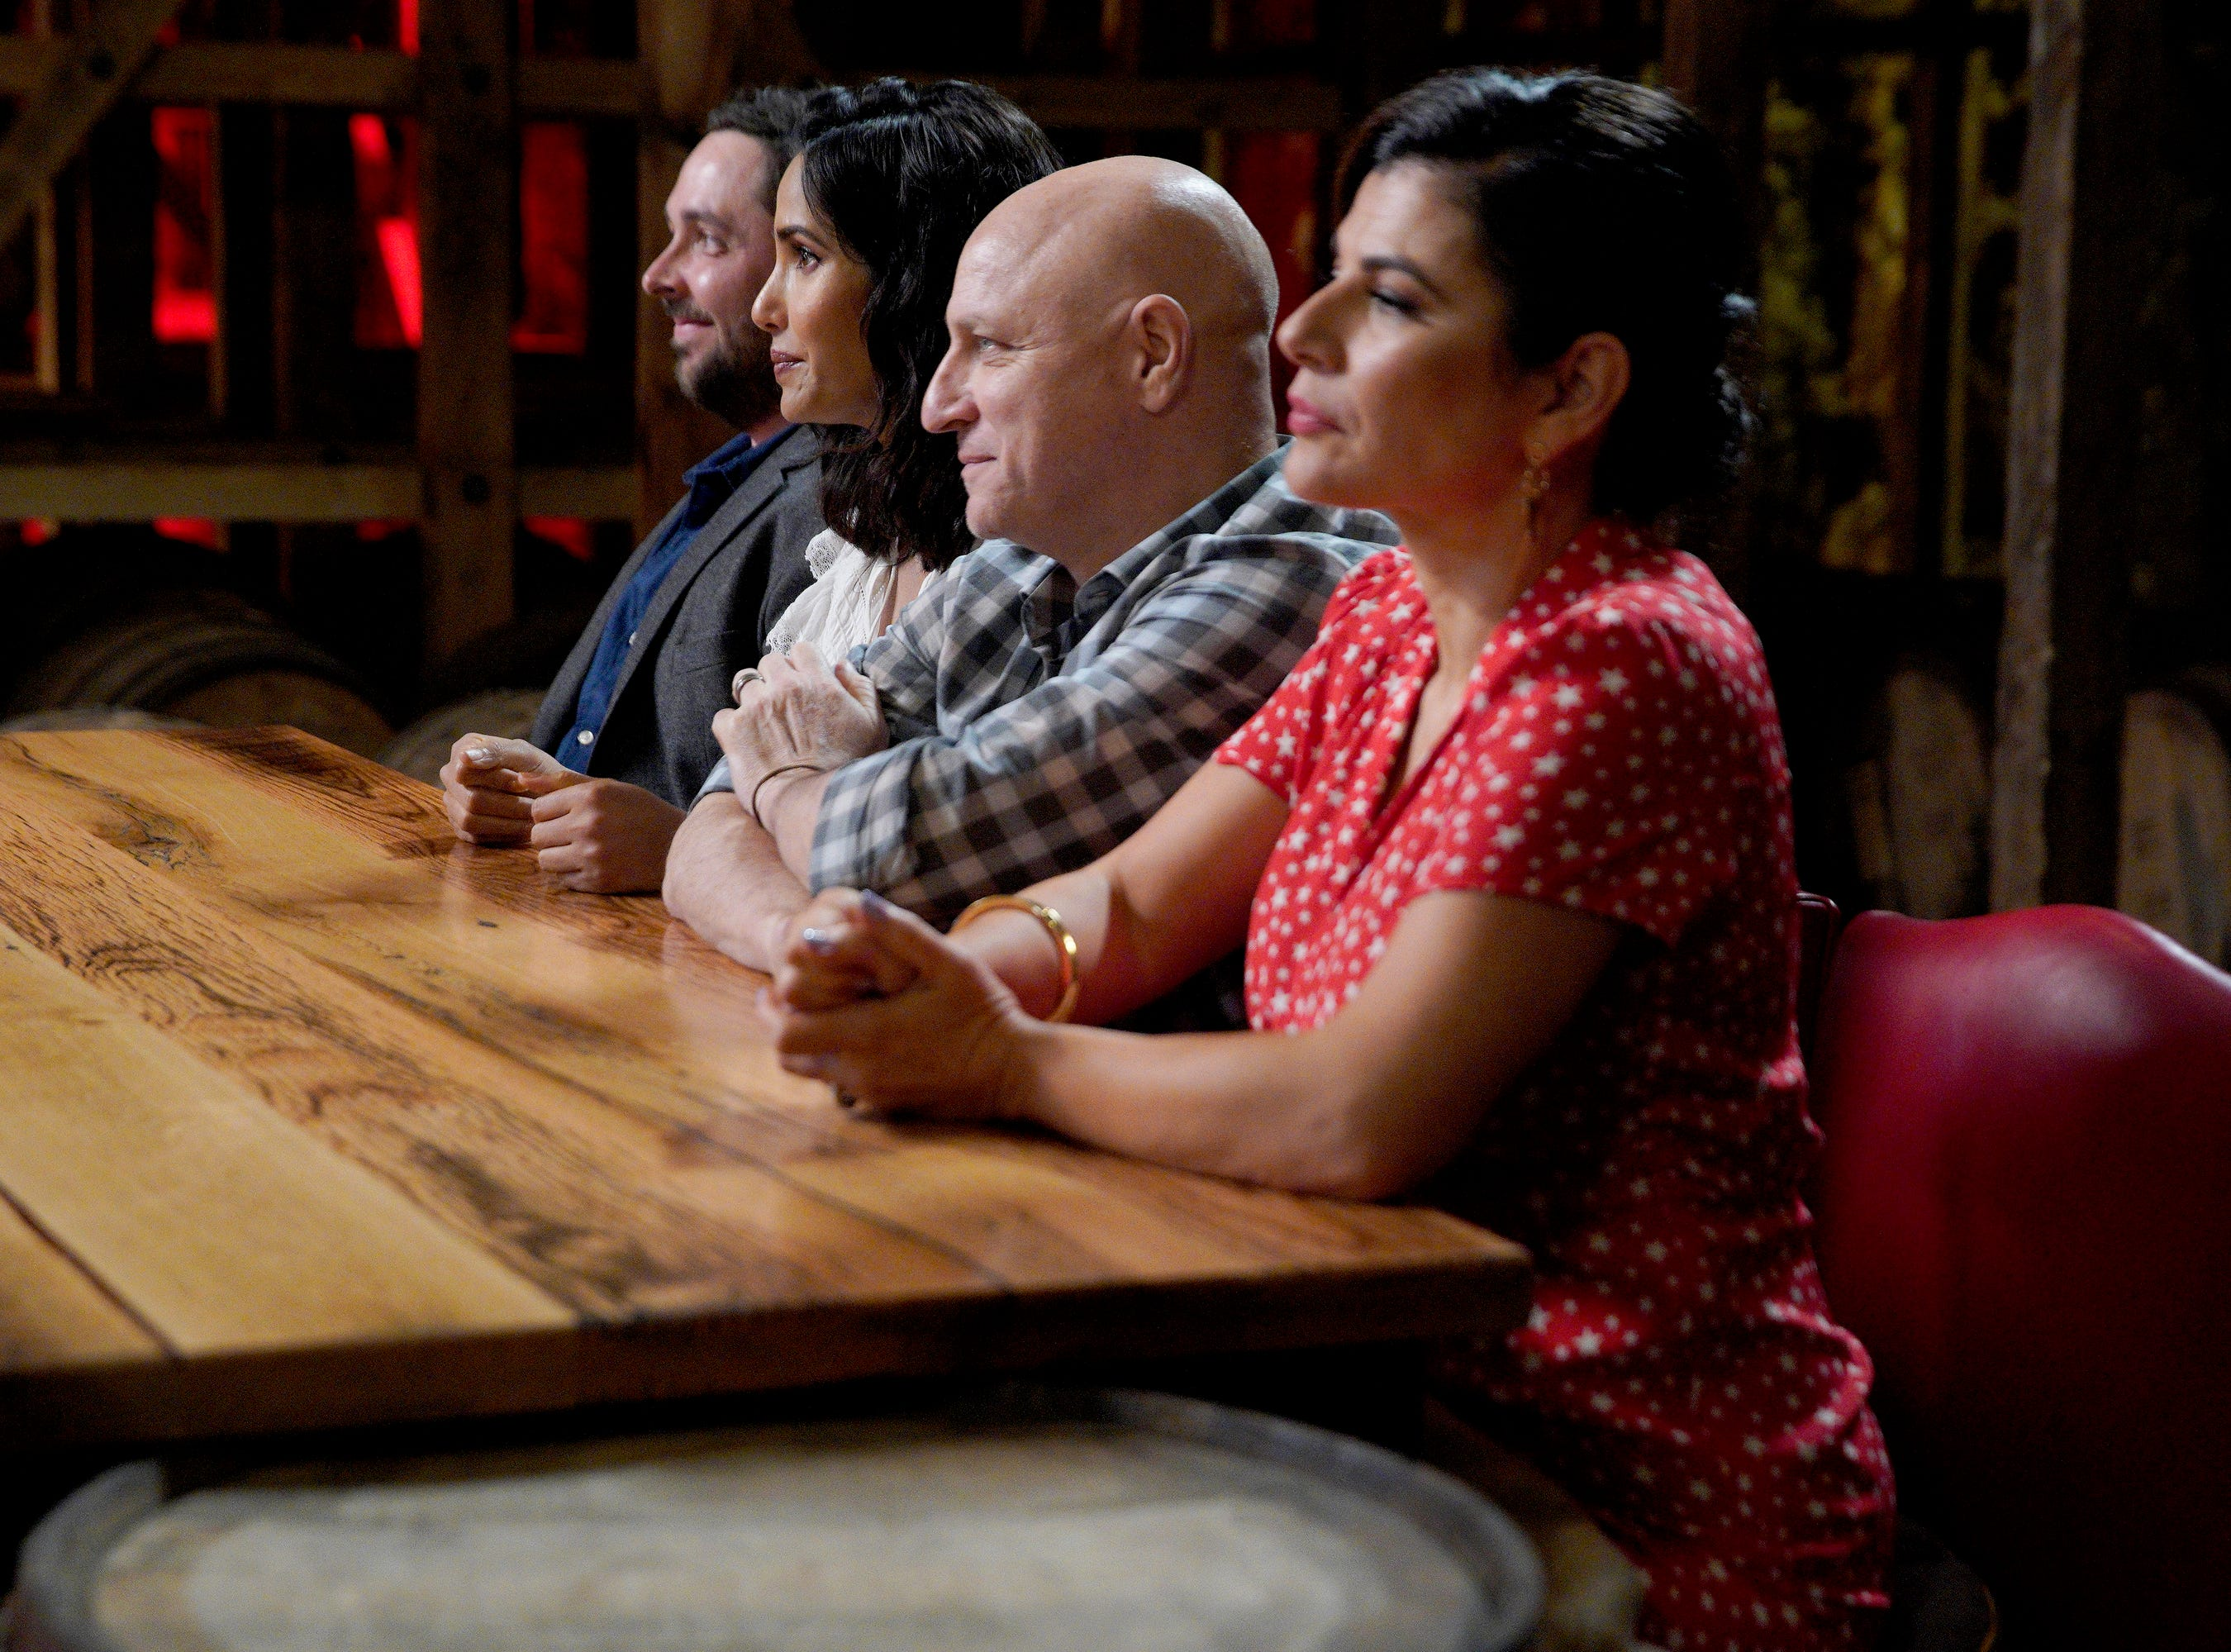 """Judges Newman Miller, Padma Lakshmi, Tom Colicchio and Nilou Motamed decide who will go home on episode 2 of """"Top Chef"""" season 16."""